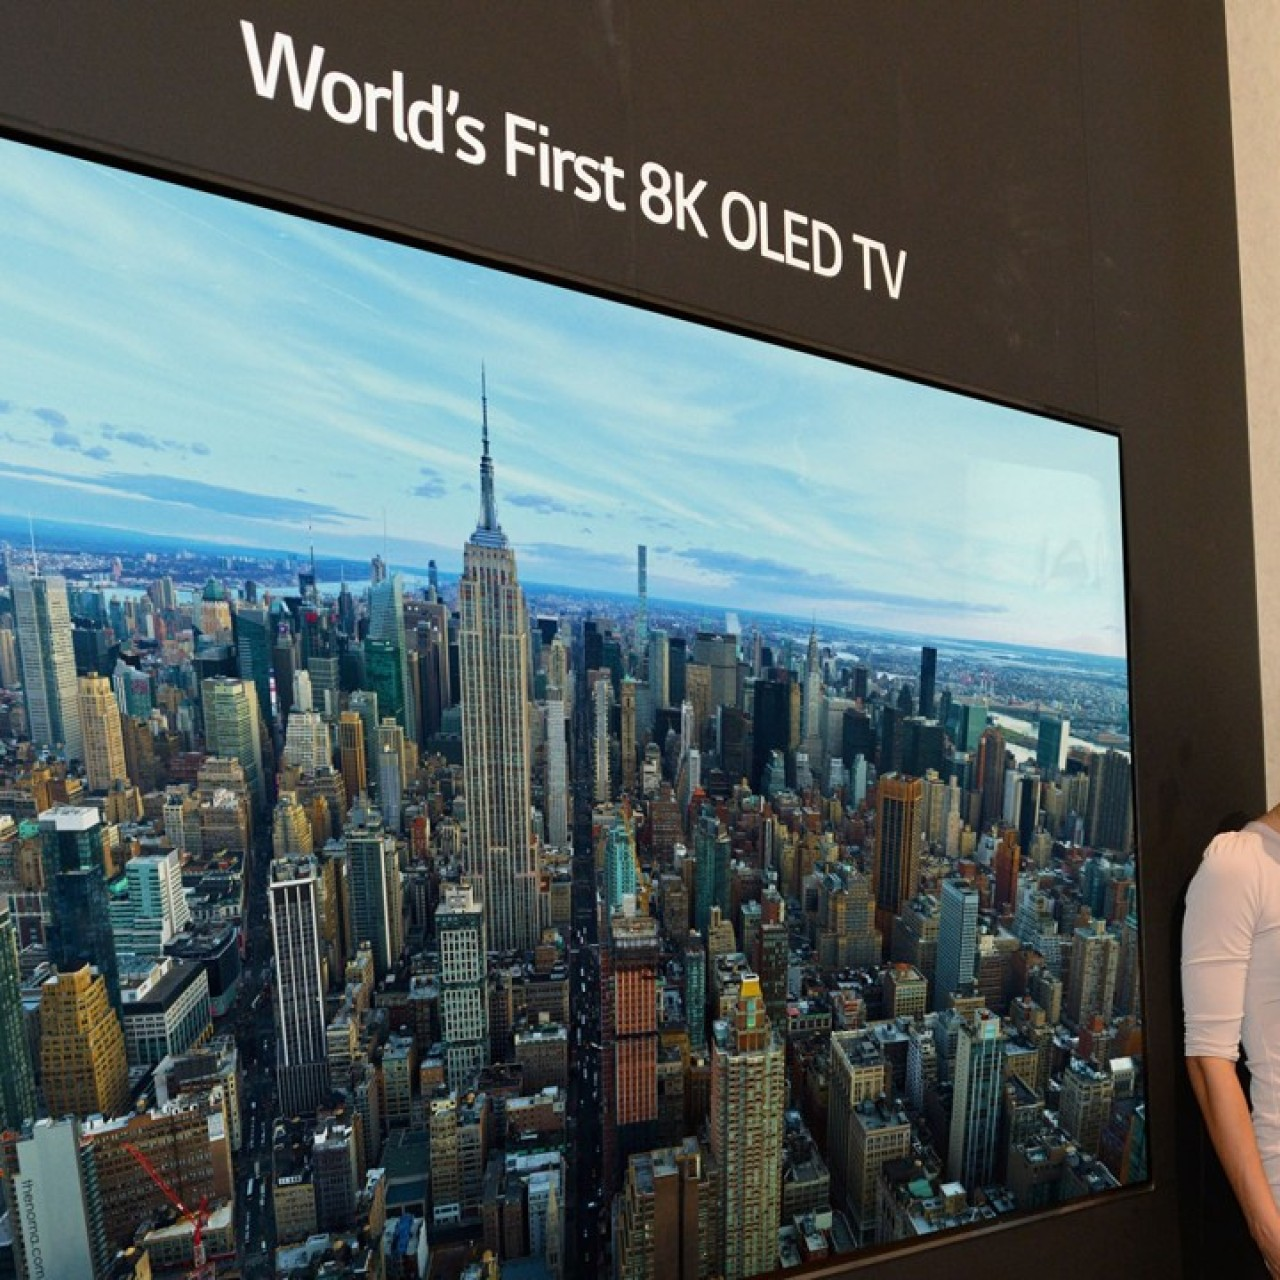 8K TVs at IFA 2018 tech show in Berlin to go on sale this autumn